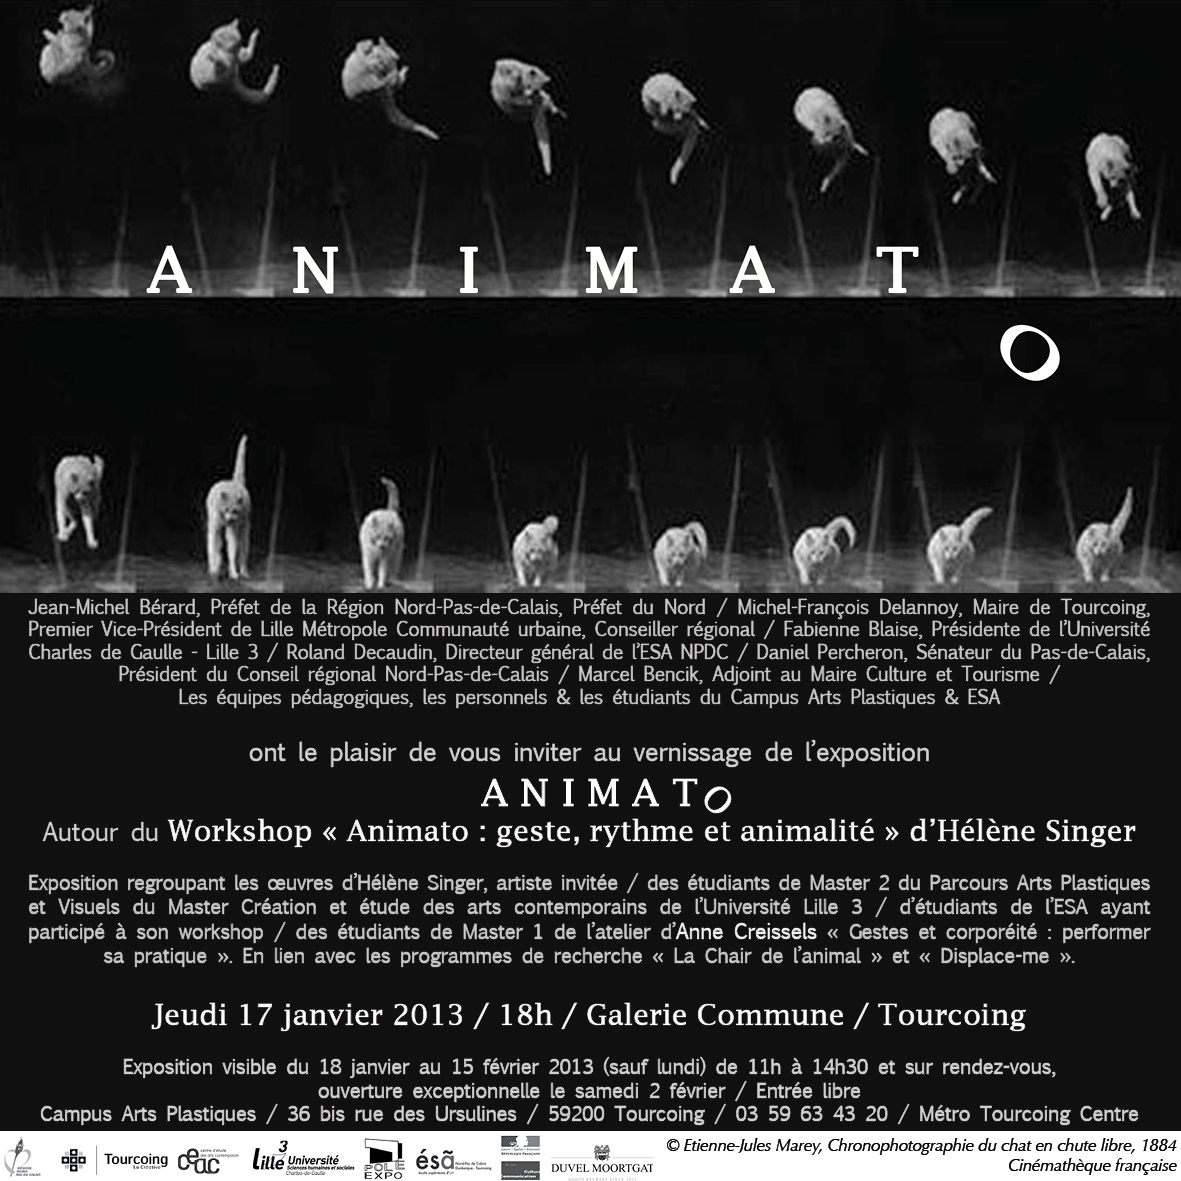 Animato invitation Mail